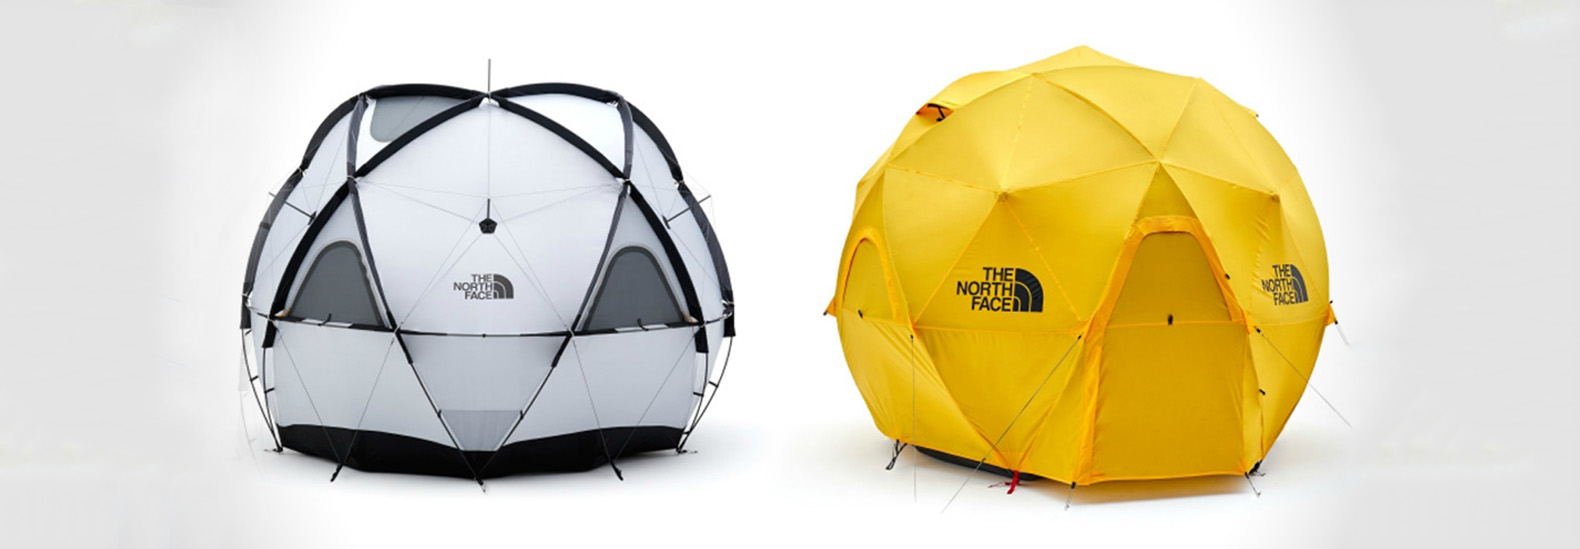 The North Face unveils a geodesic tent that can withstand 60 mph winds & The North Face unveils a geodesic tent that can withstand 60 mph ...